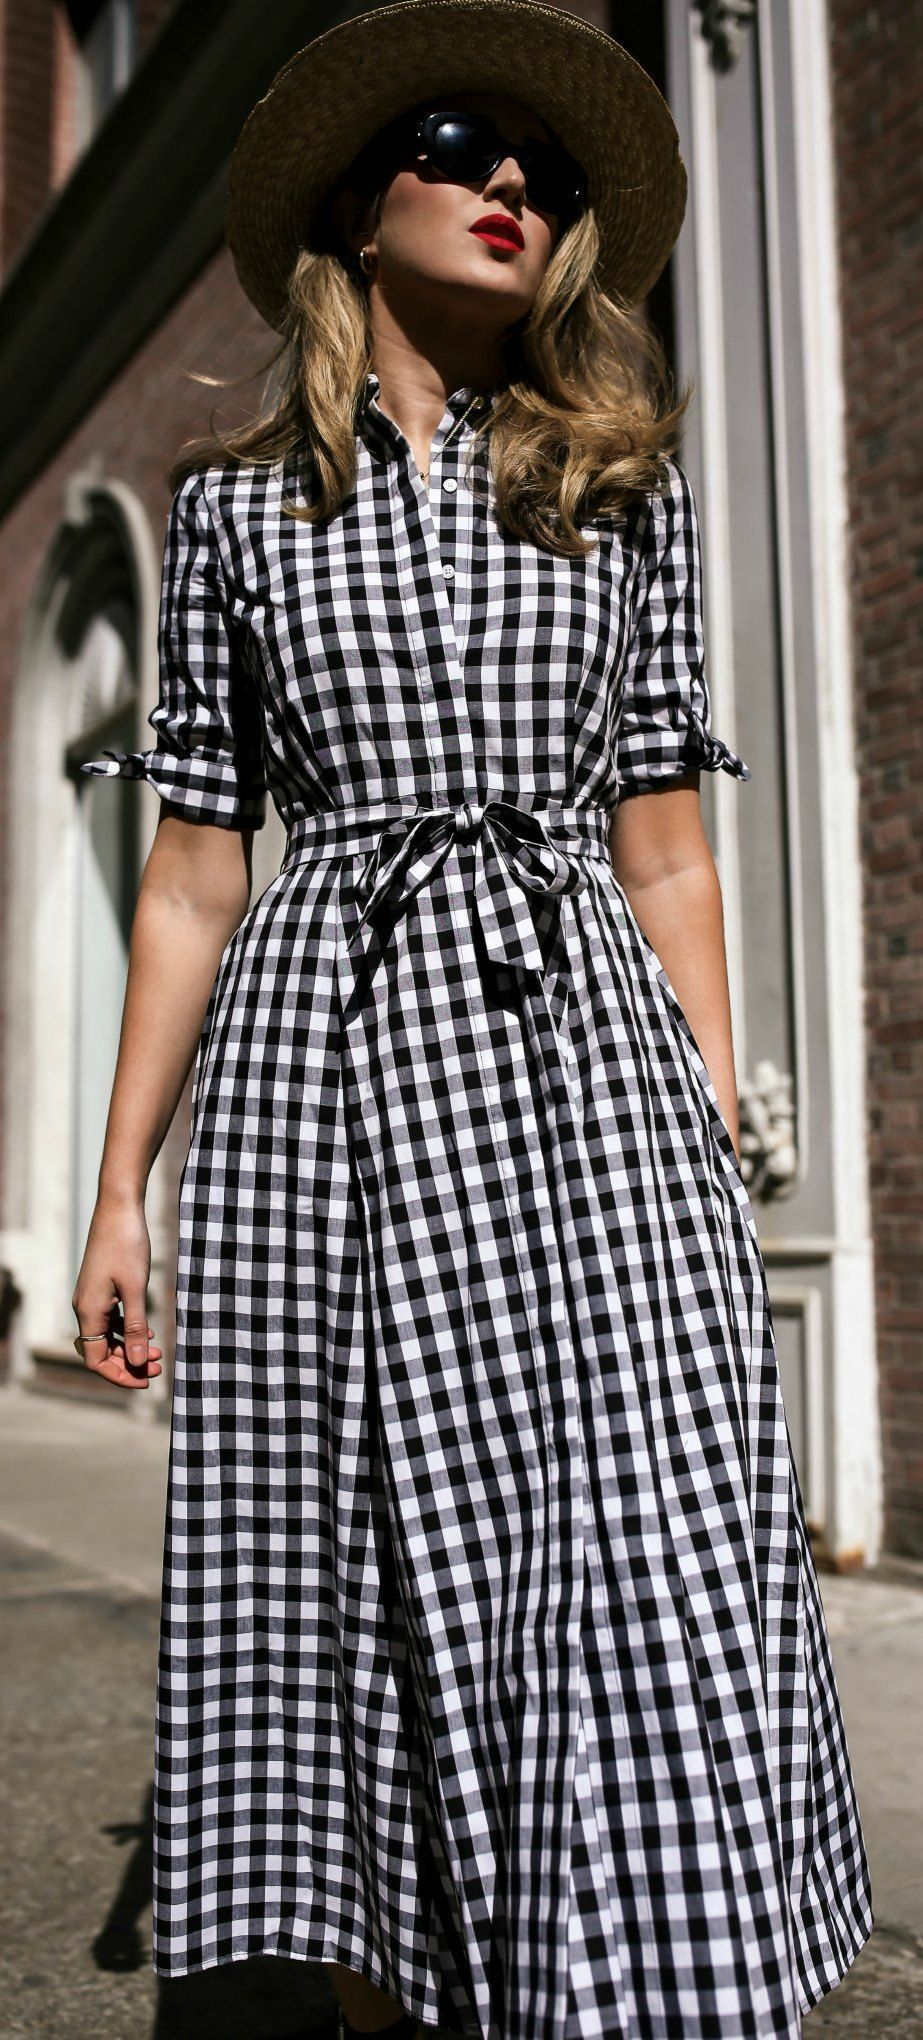 d8e17248ba46b Click for outfit details!    Short sleeve black and white gingham ...